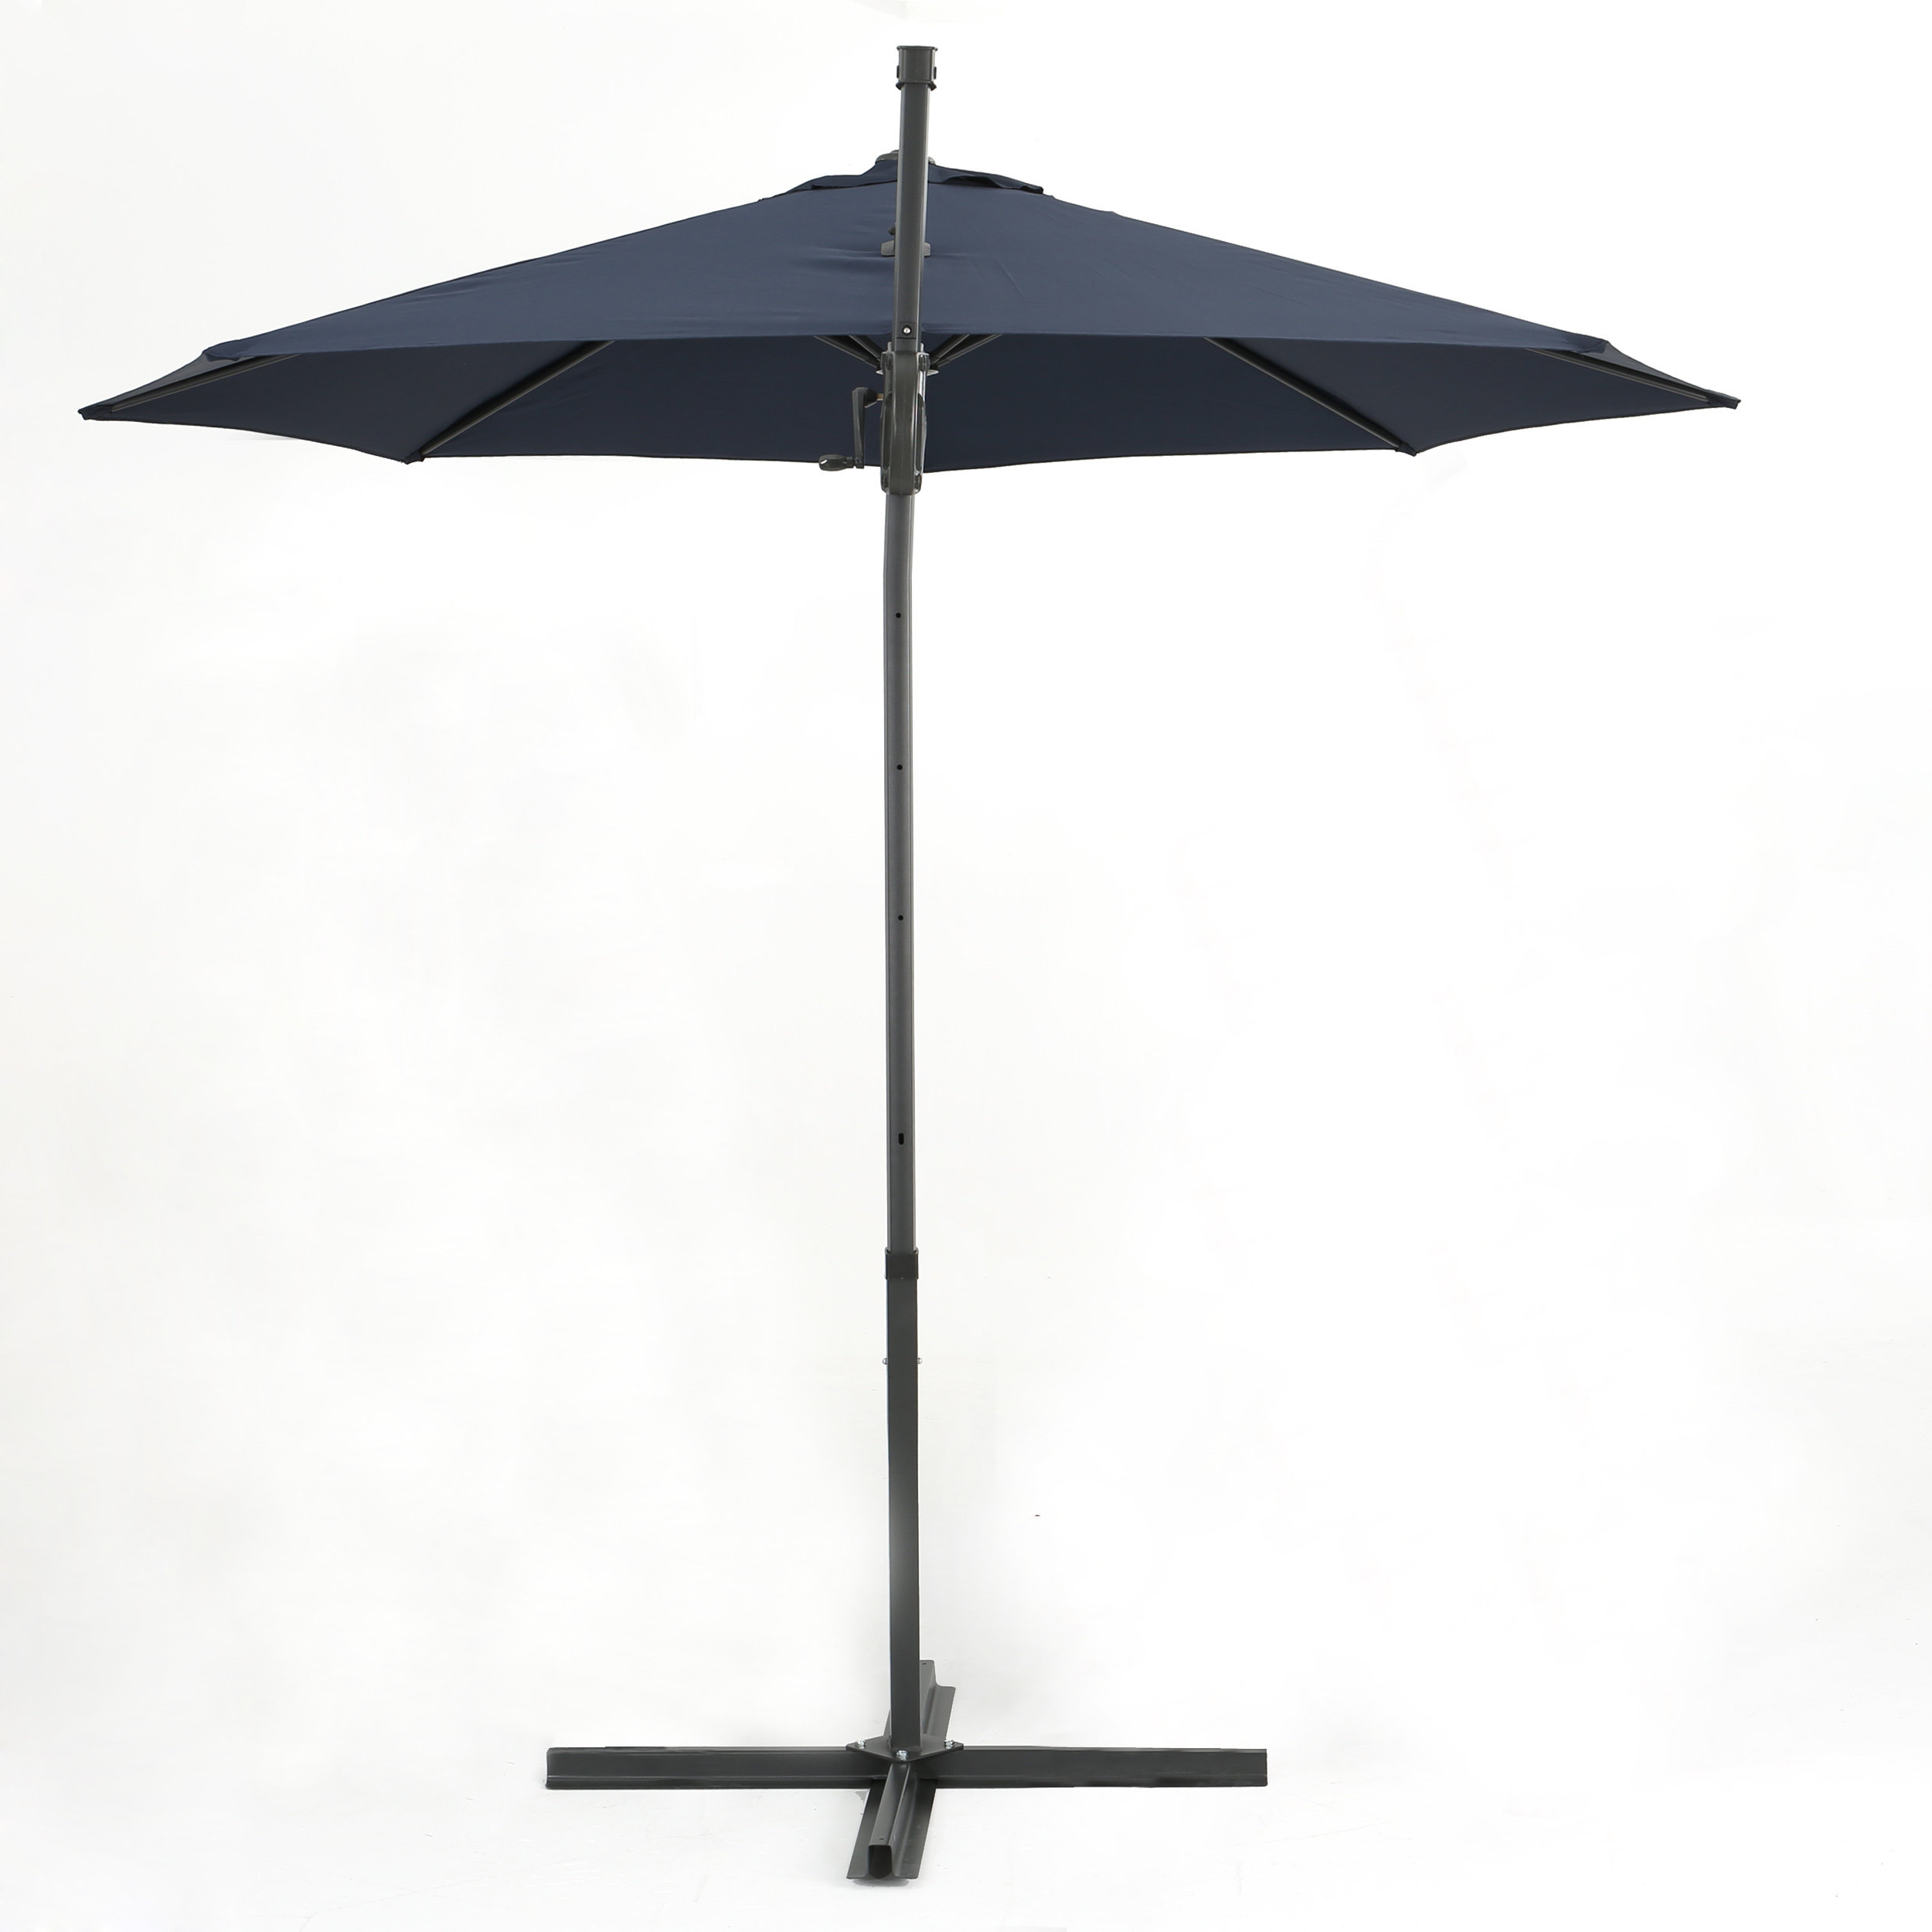 Jaelynn Cantilever Umbrellas Intended For Most Popular Jaelynn 9.5' Cantilever Umbrella (Gallery 2 of 20)